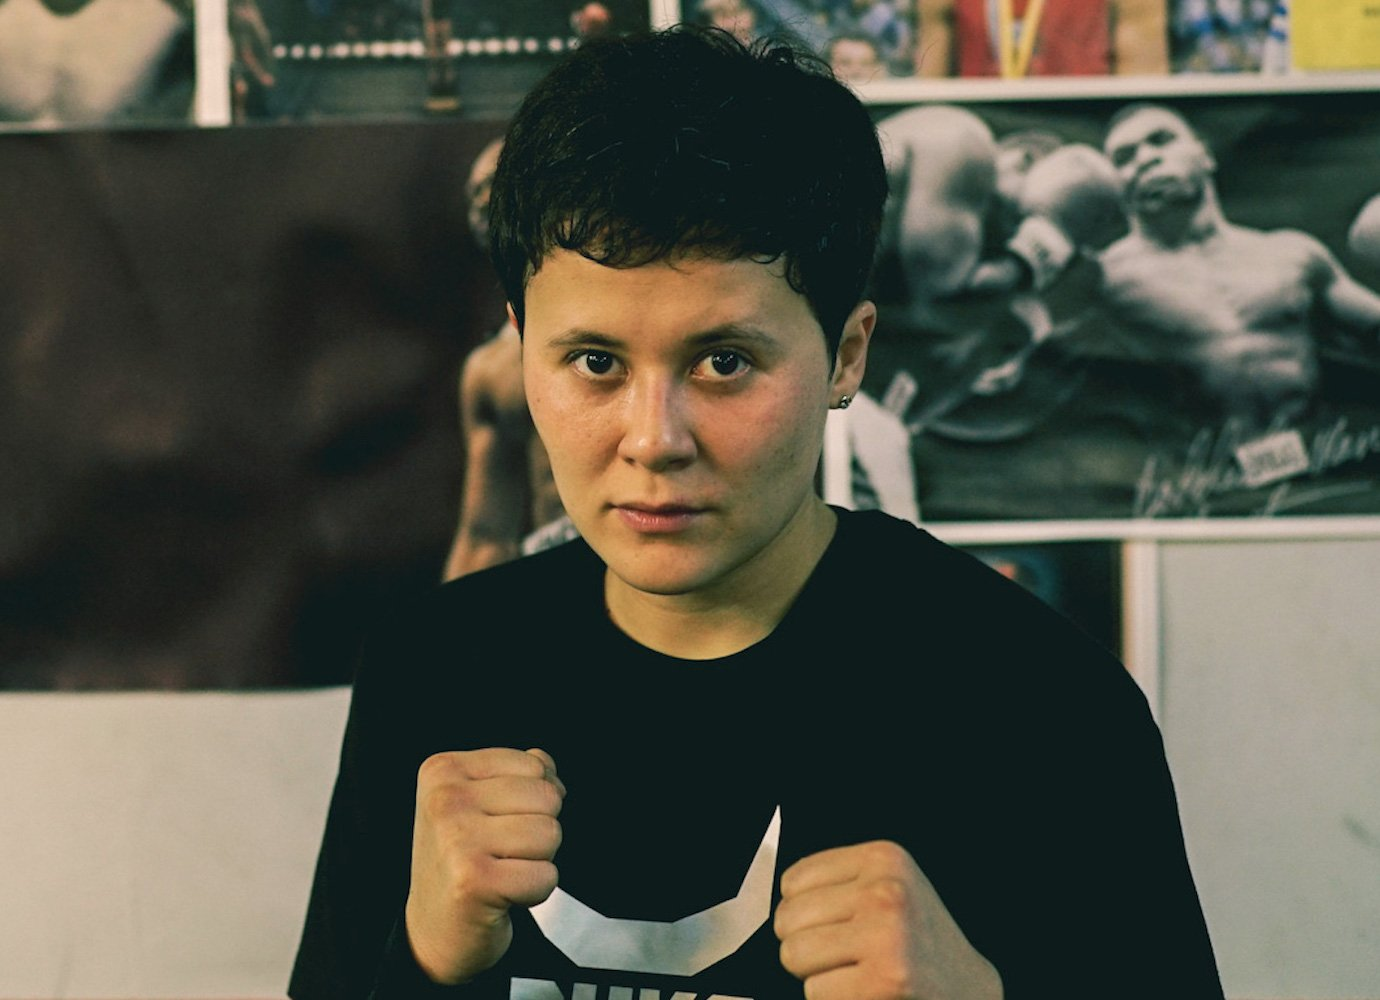 Meet the Kazakh boxing champ mixing self-defence classes with legal help for women